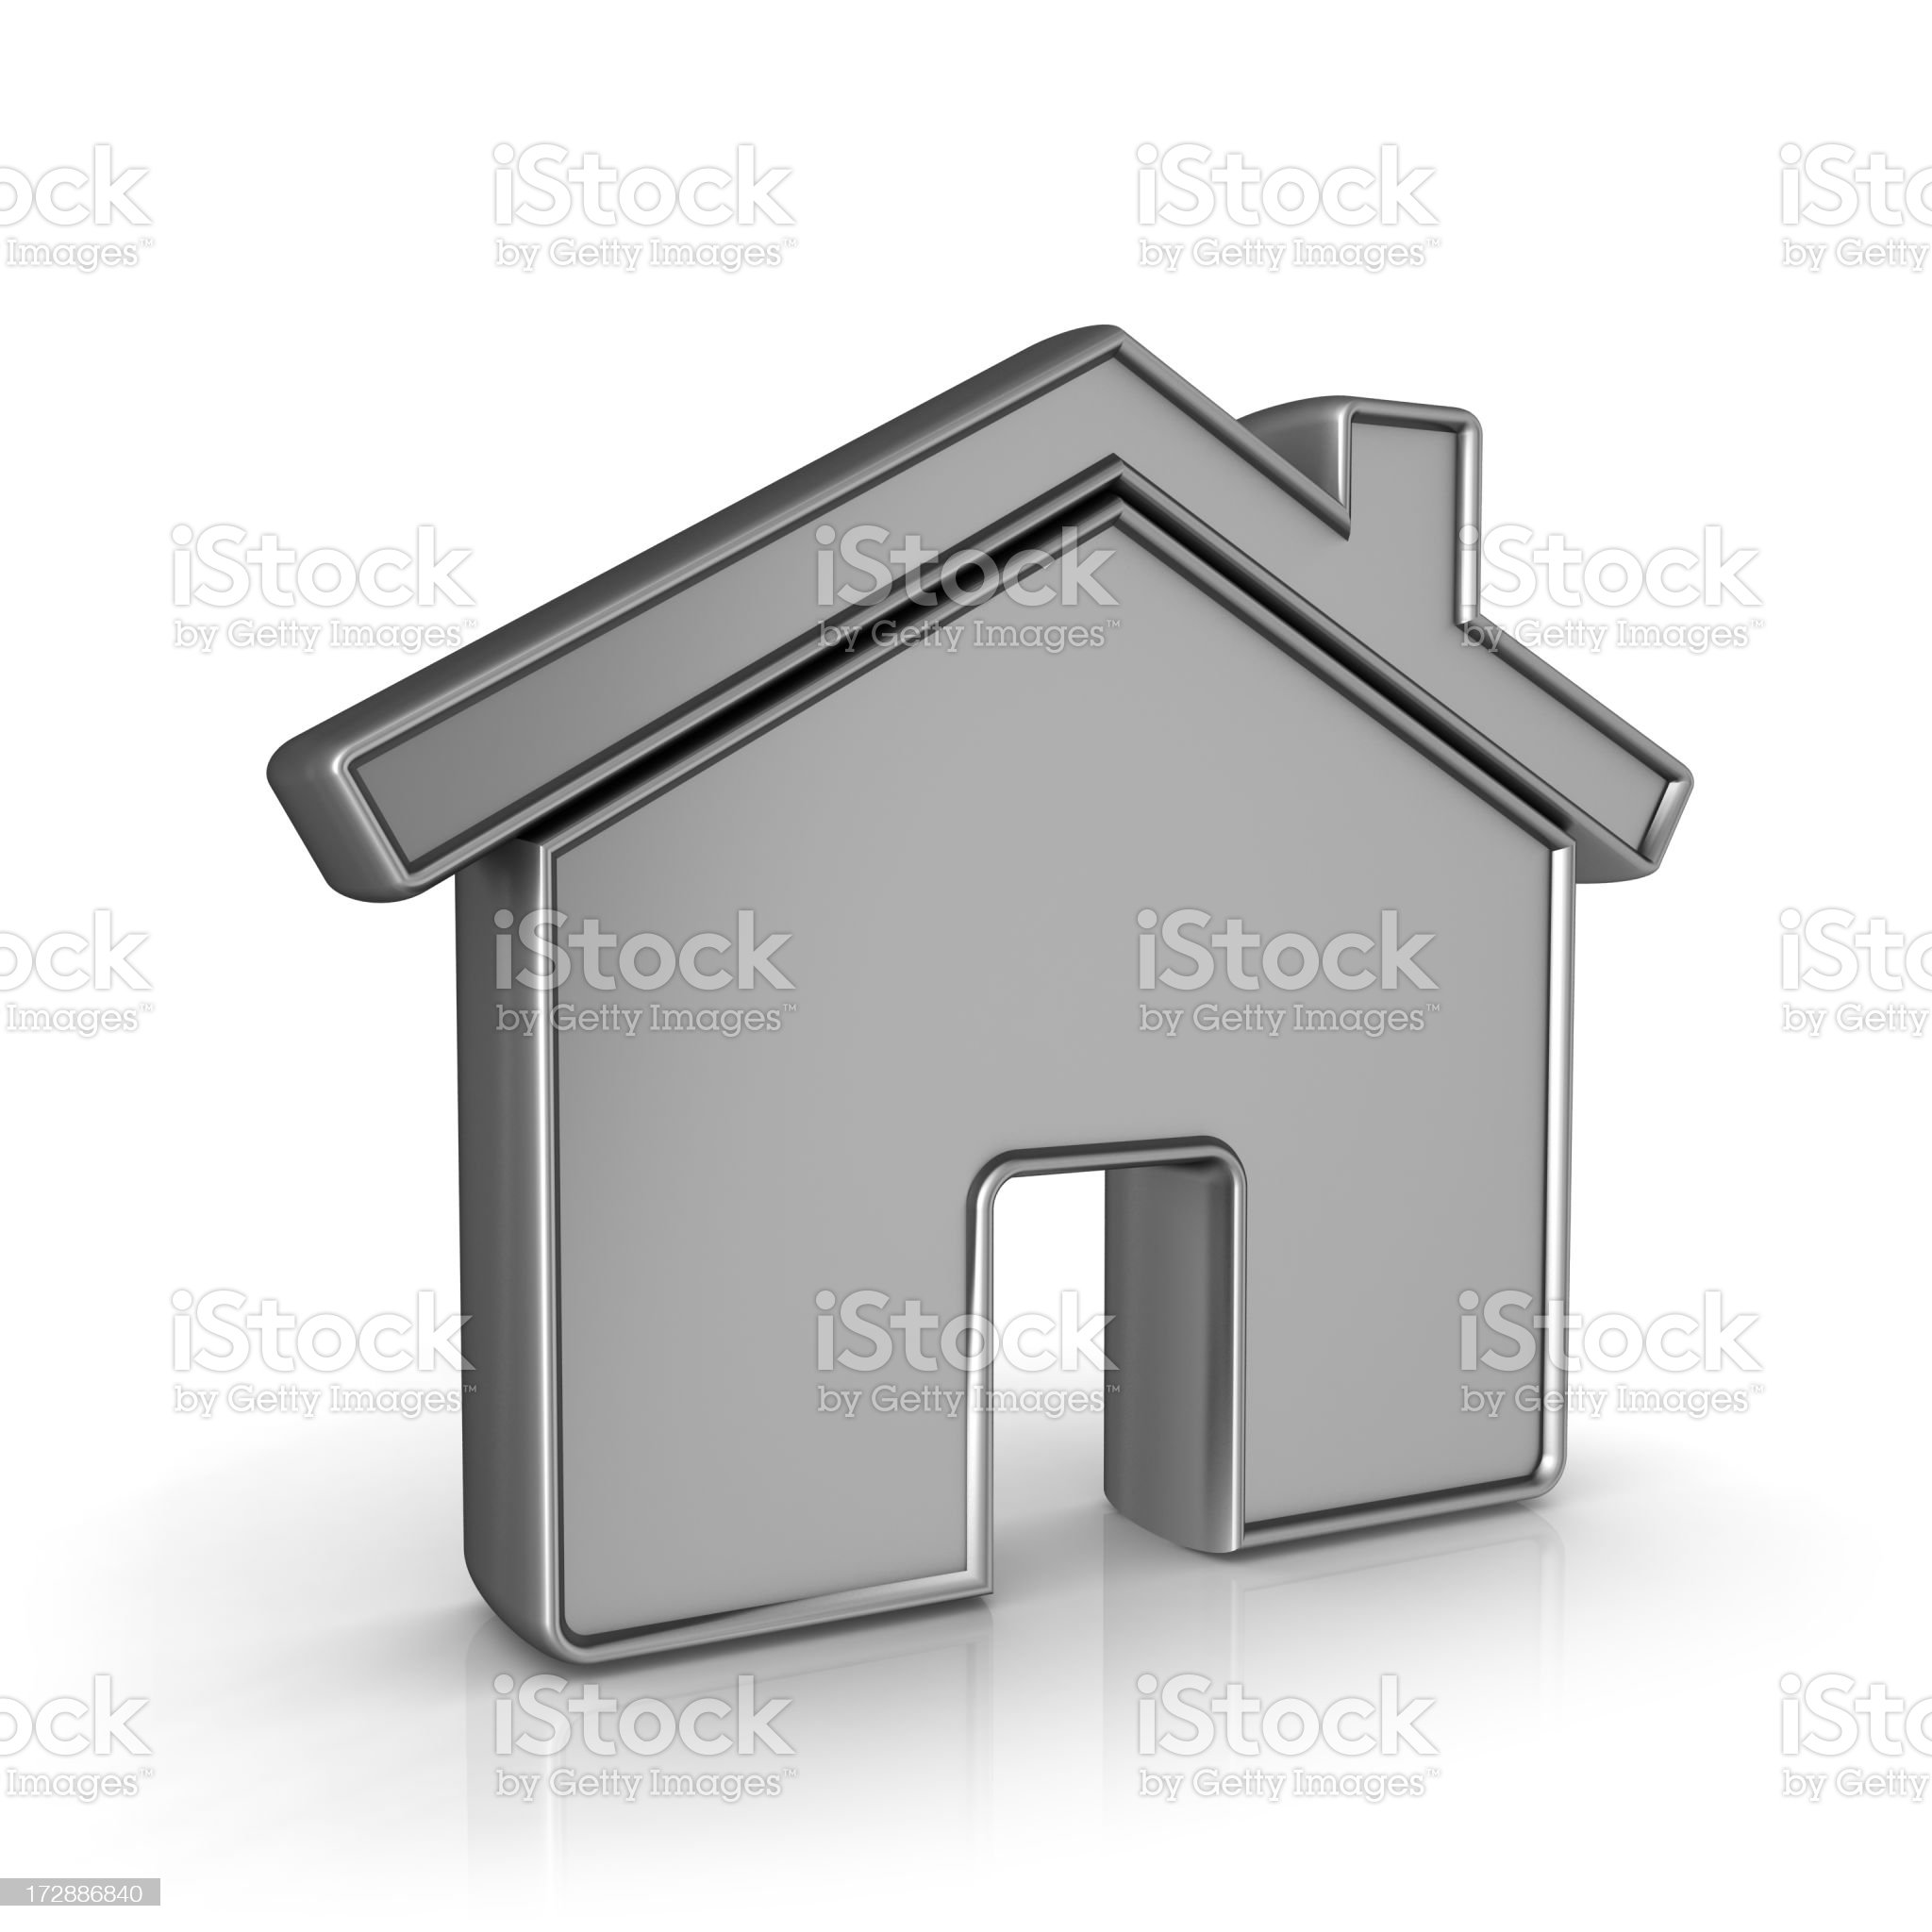 home icon royalty-free stock photo